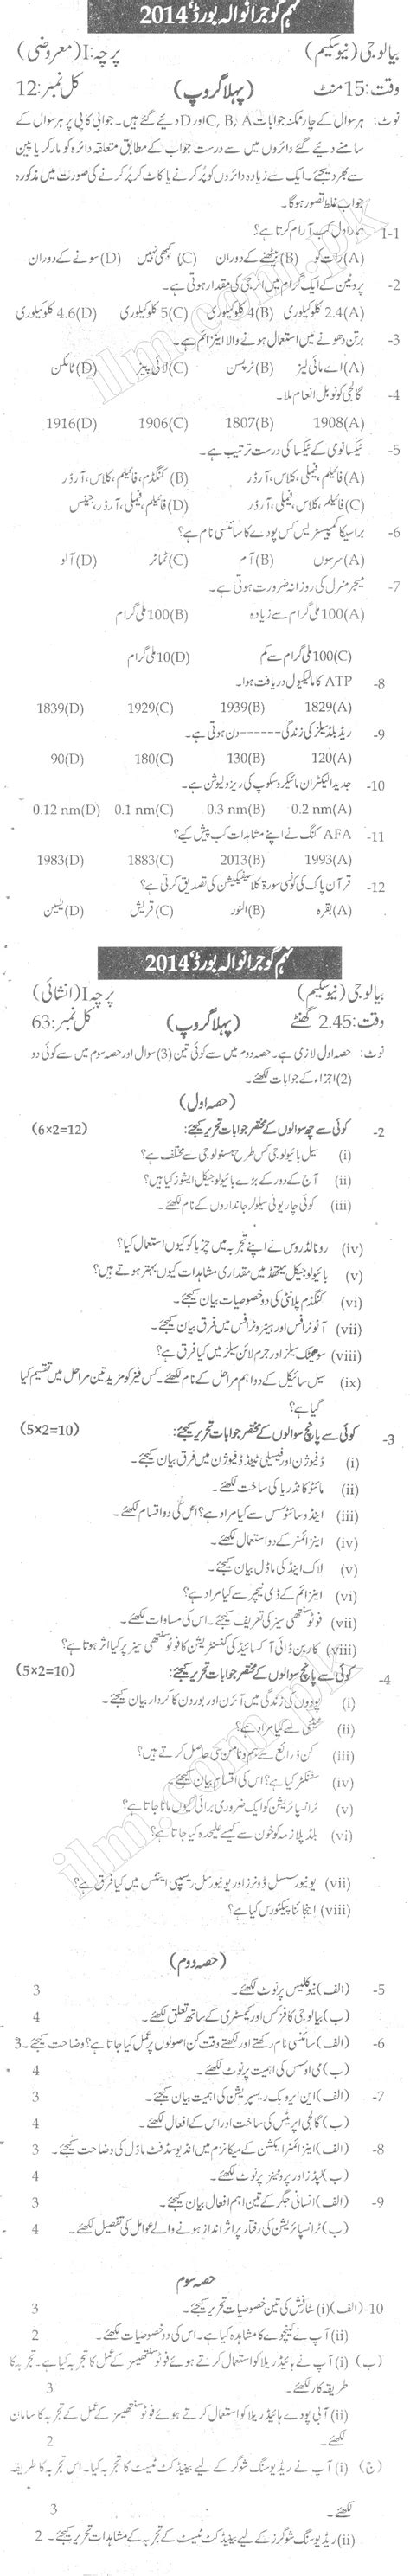 paper pattern 2nd year 2014 gujranwala board past paper of biology 9th class 2014 gujranwala board